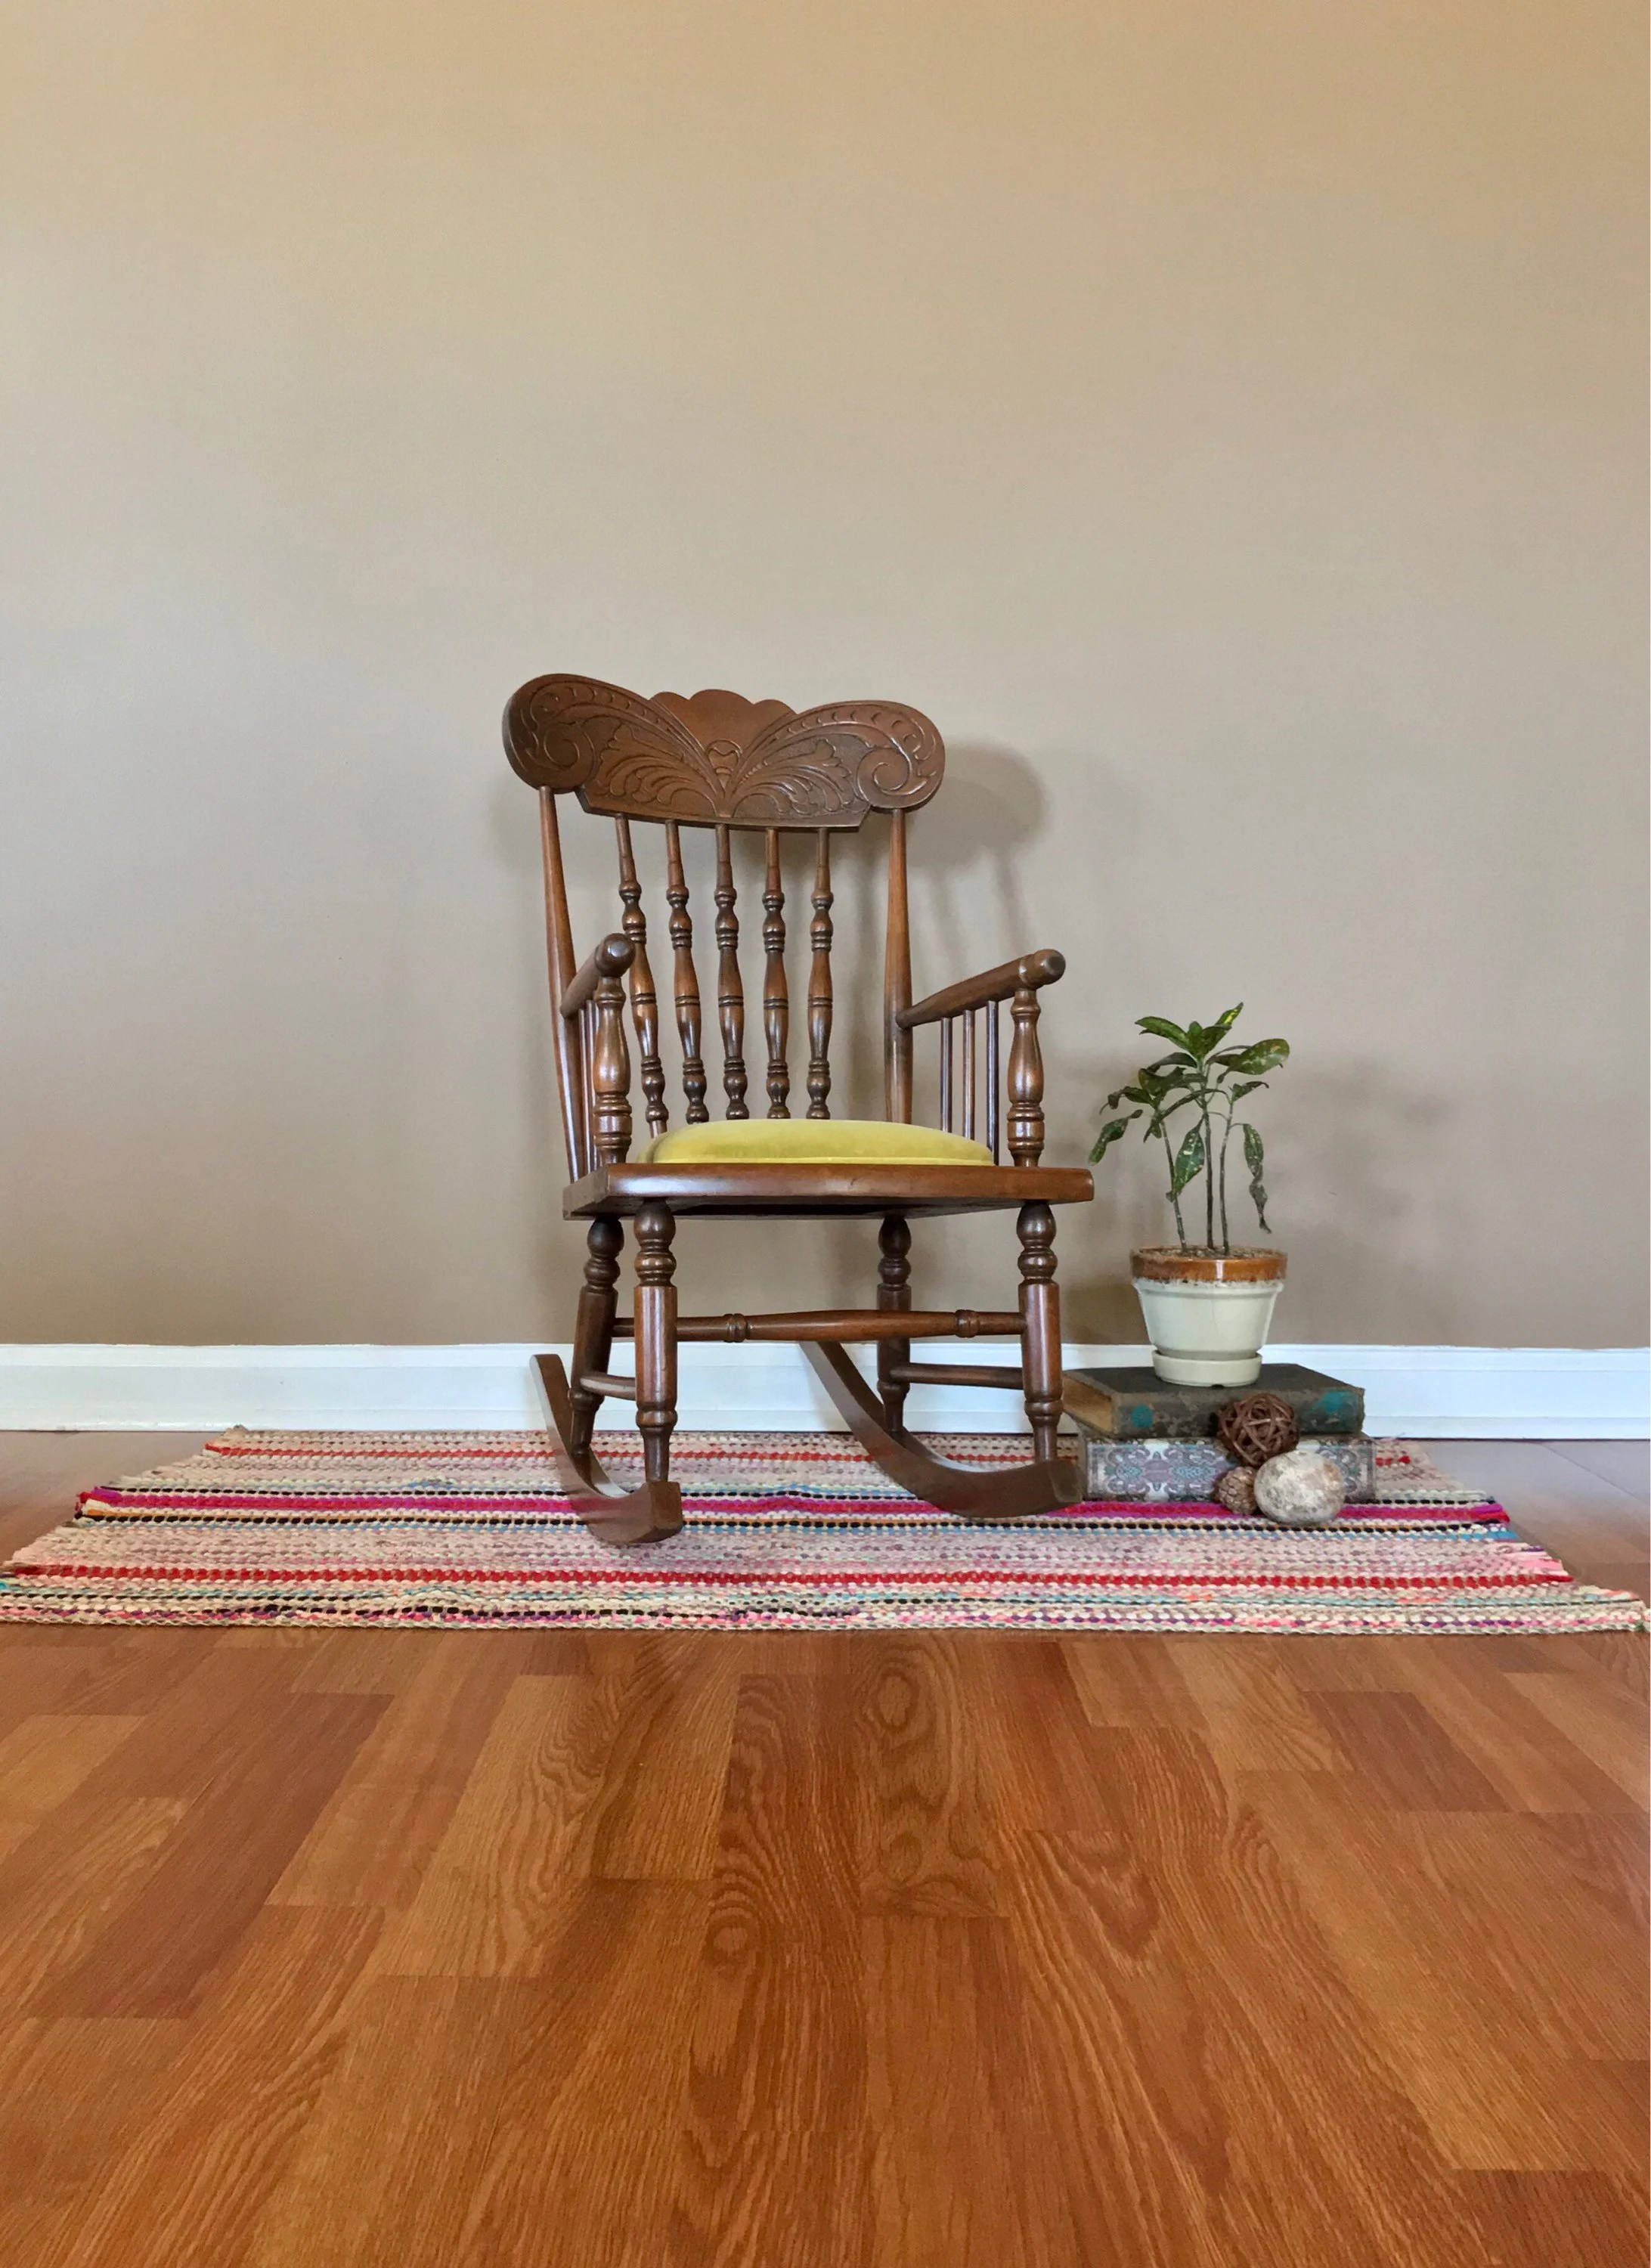 Child Wooden Rocking Chair Child S Rocking Chair Vintage Wooden Childs Rocker Childs Wooden Rocking Chair Vintage Wooden Rocking Chair